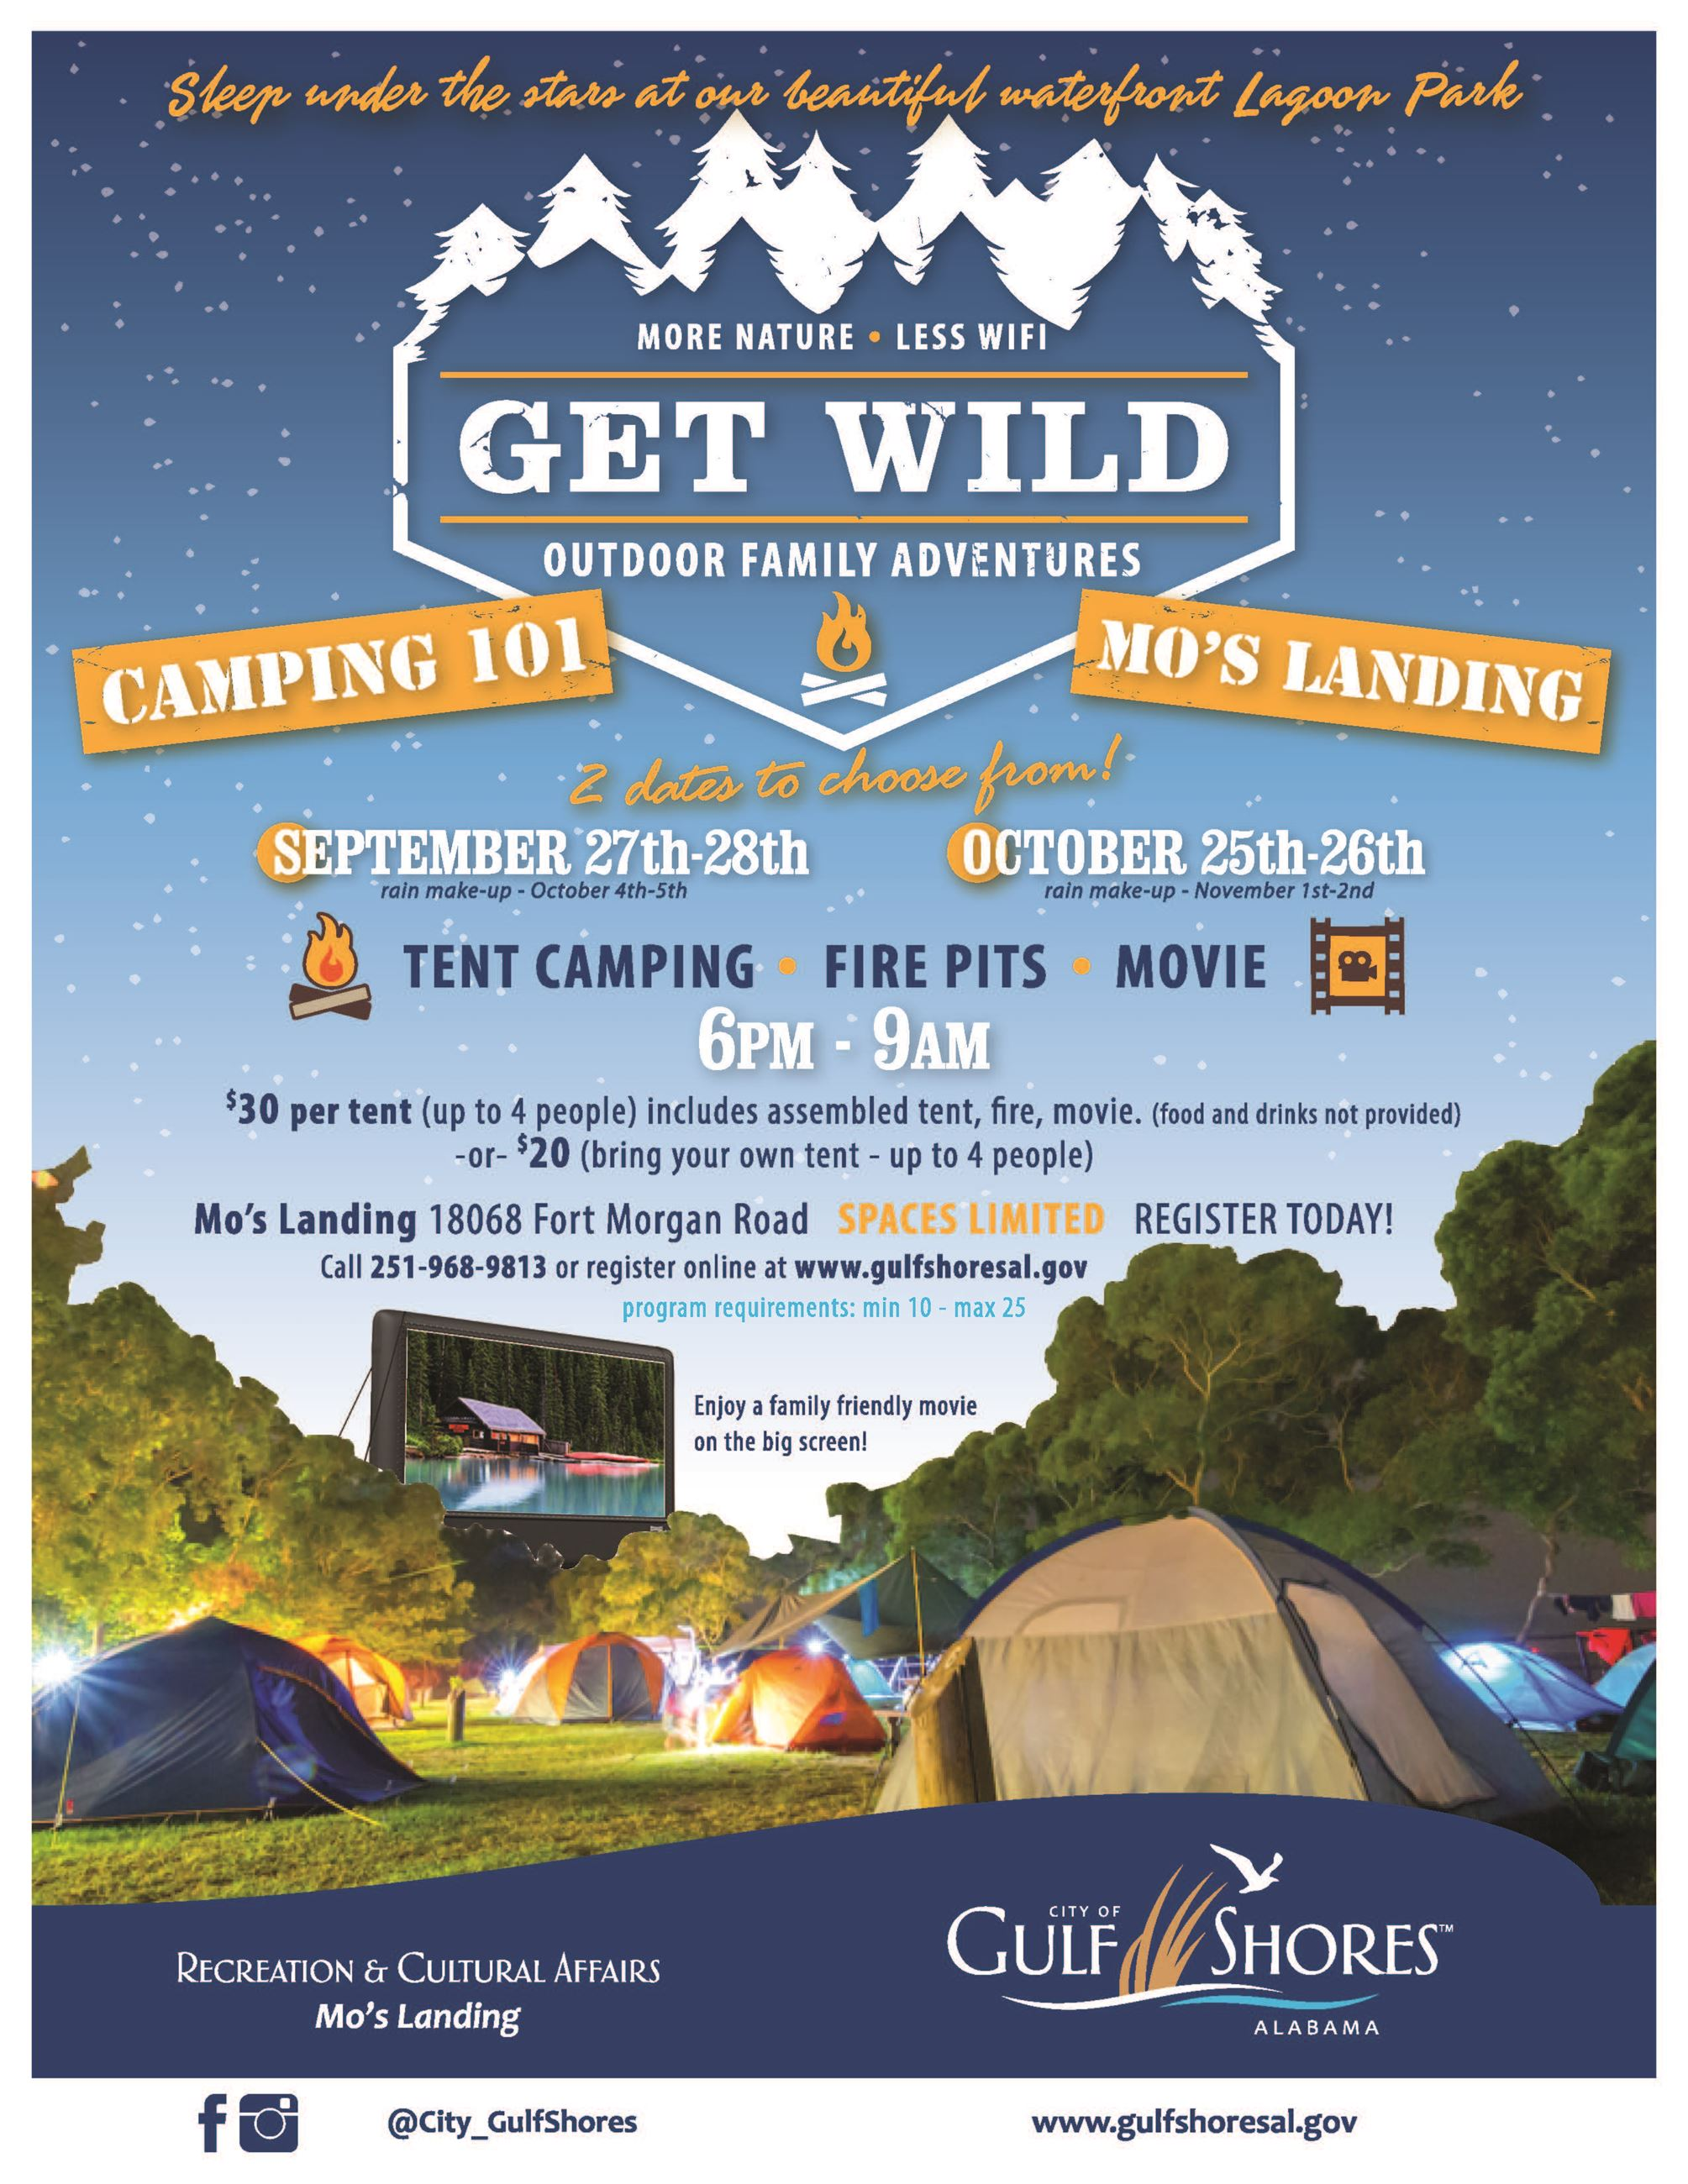 Get Wild Camping 101 event flyer with information